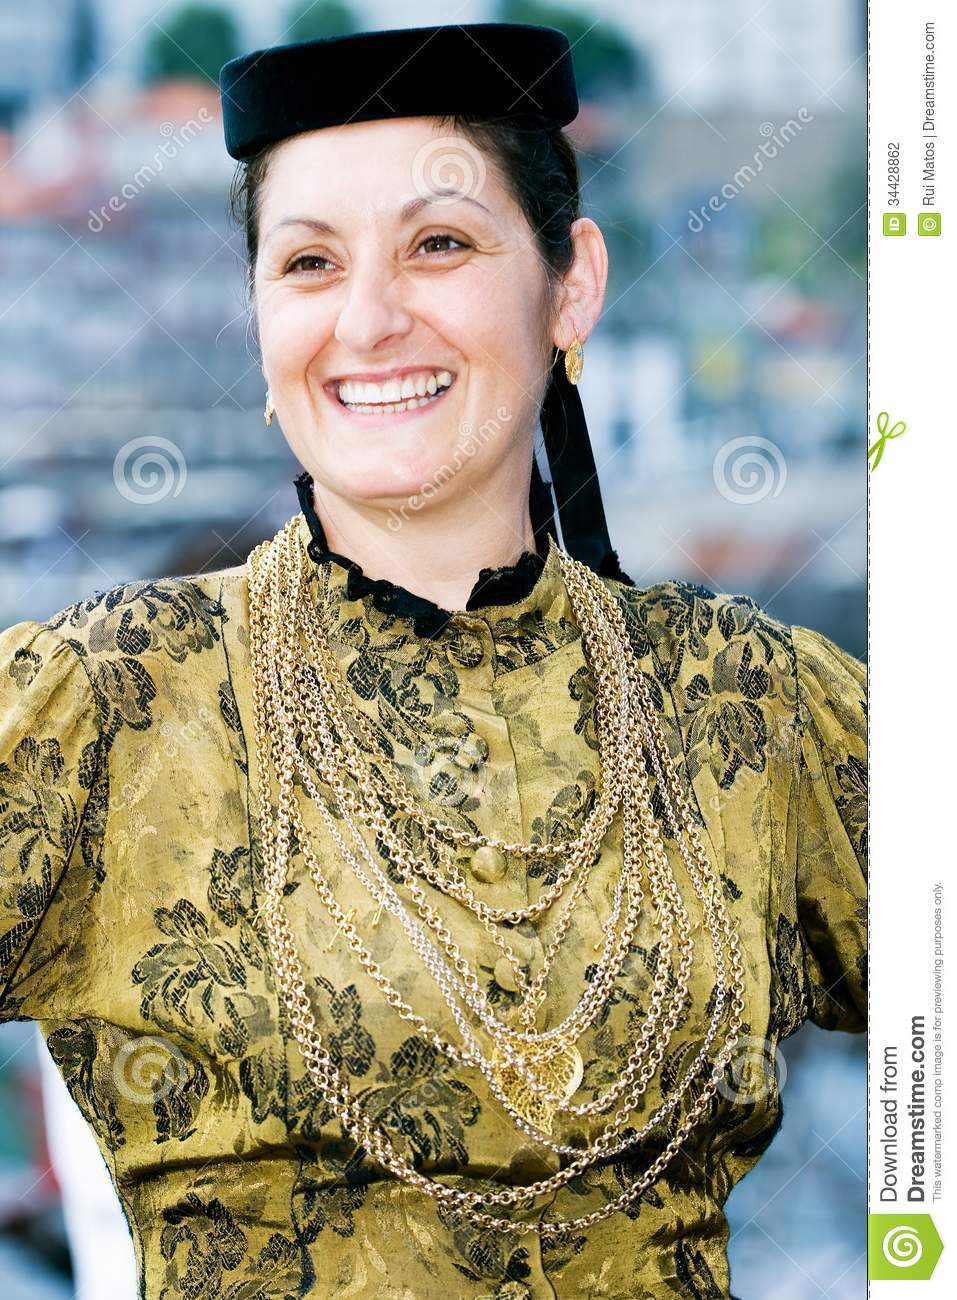 Stock Photography Portuguese Folklore Dancer Image 34428862